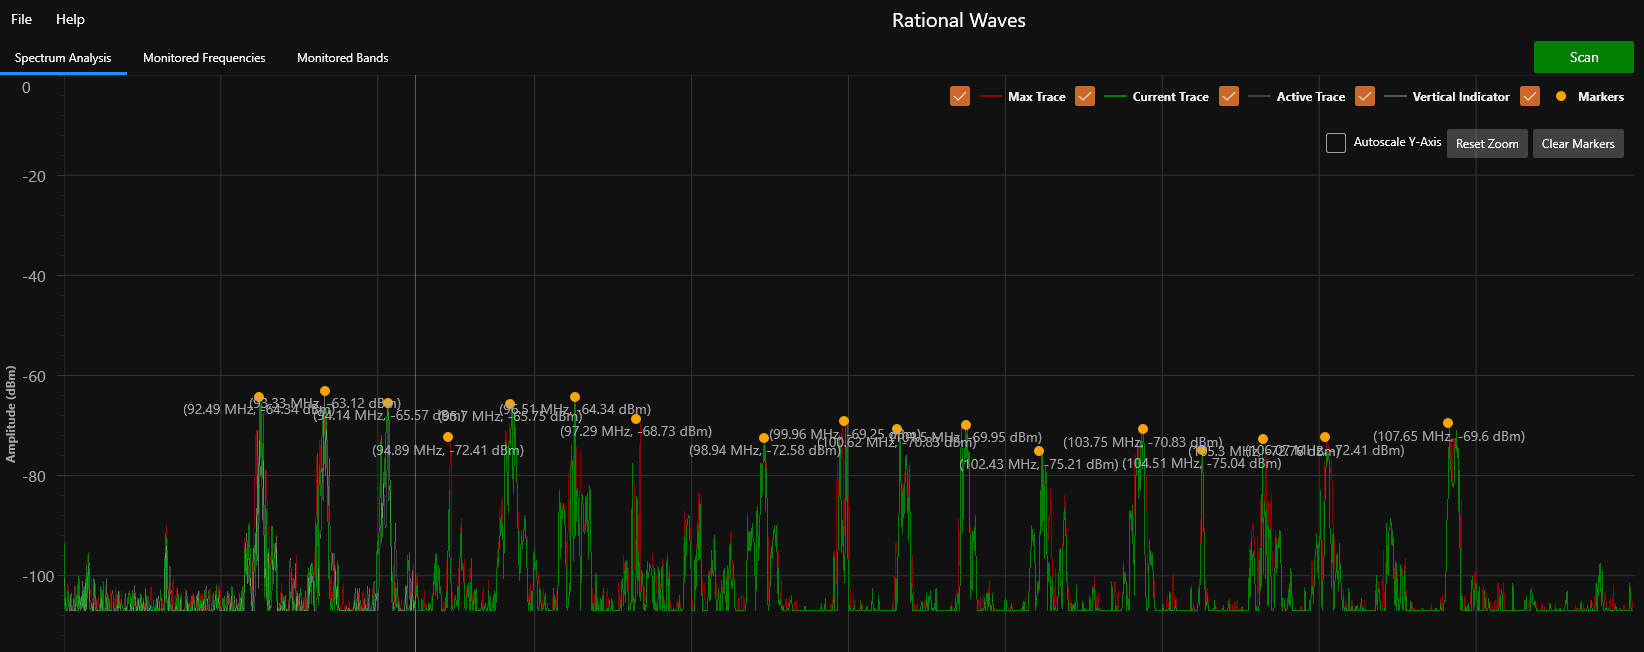 Rational Waves RF Spectrum Analyzer Software